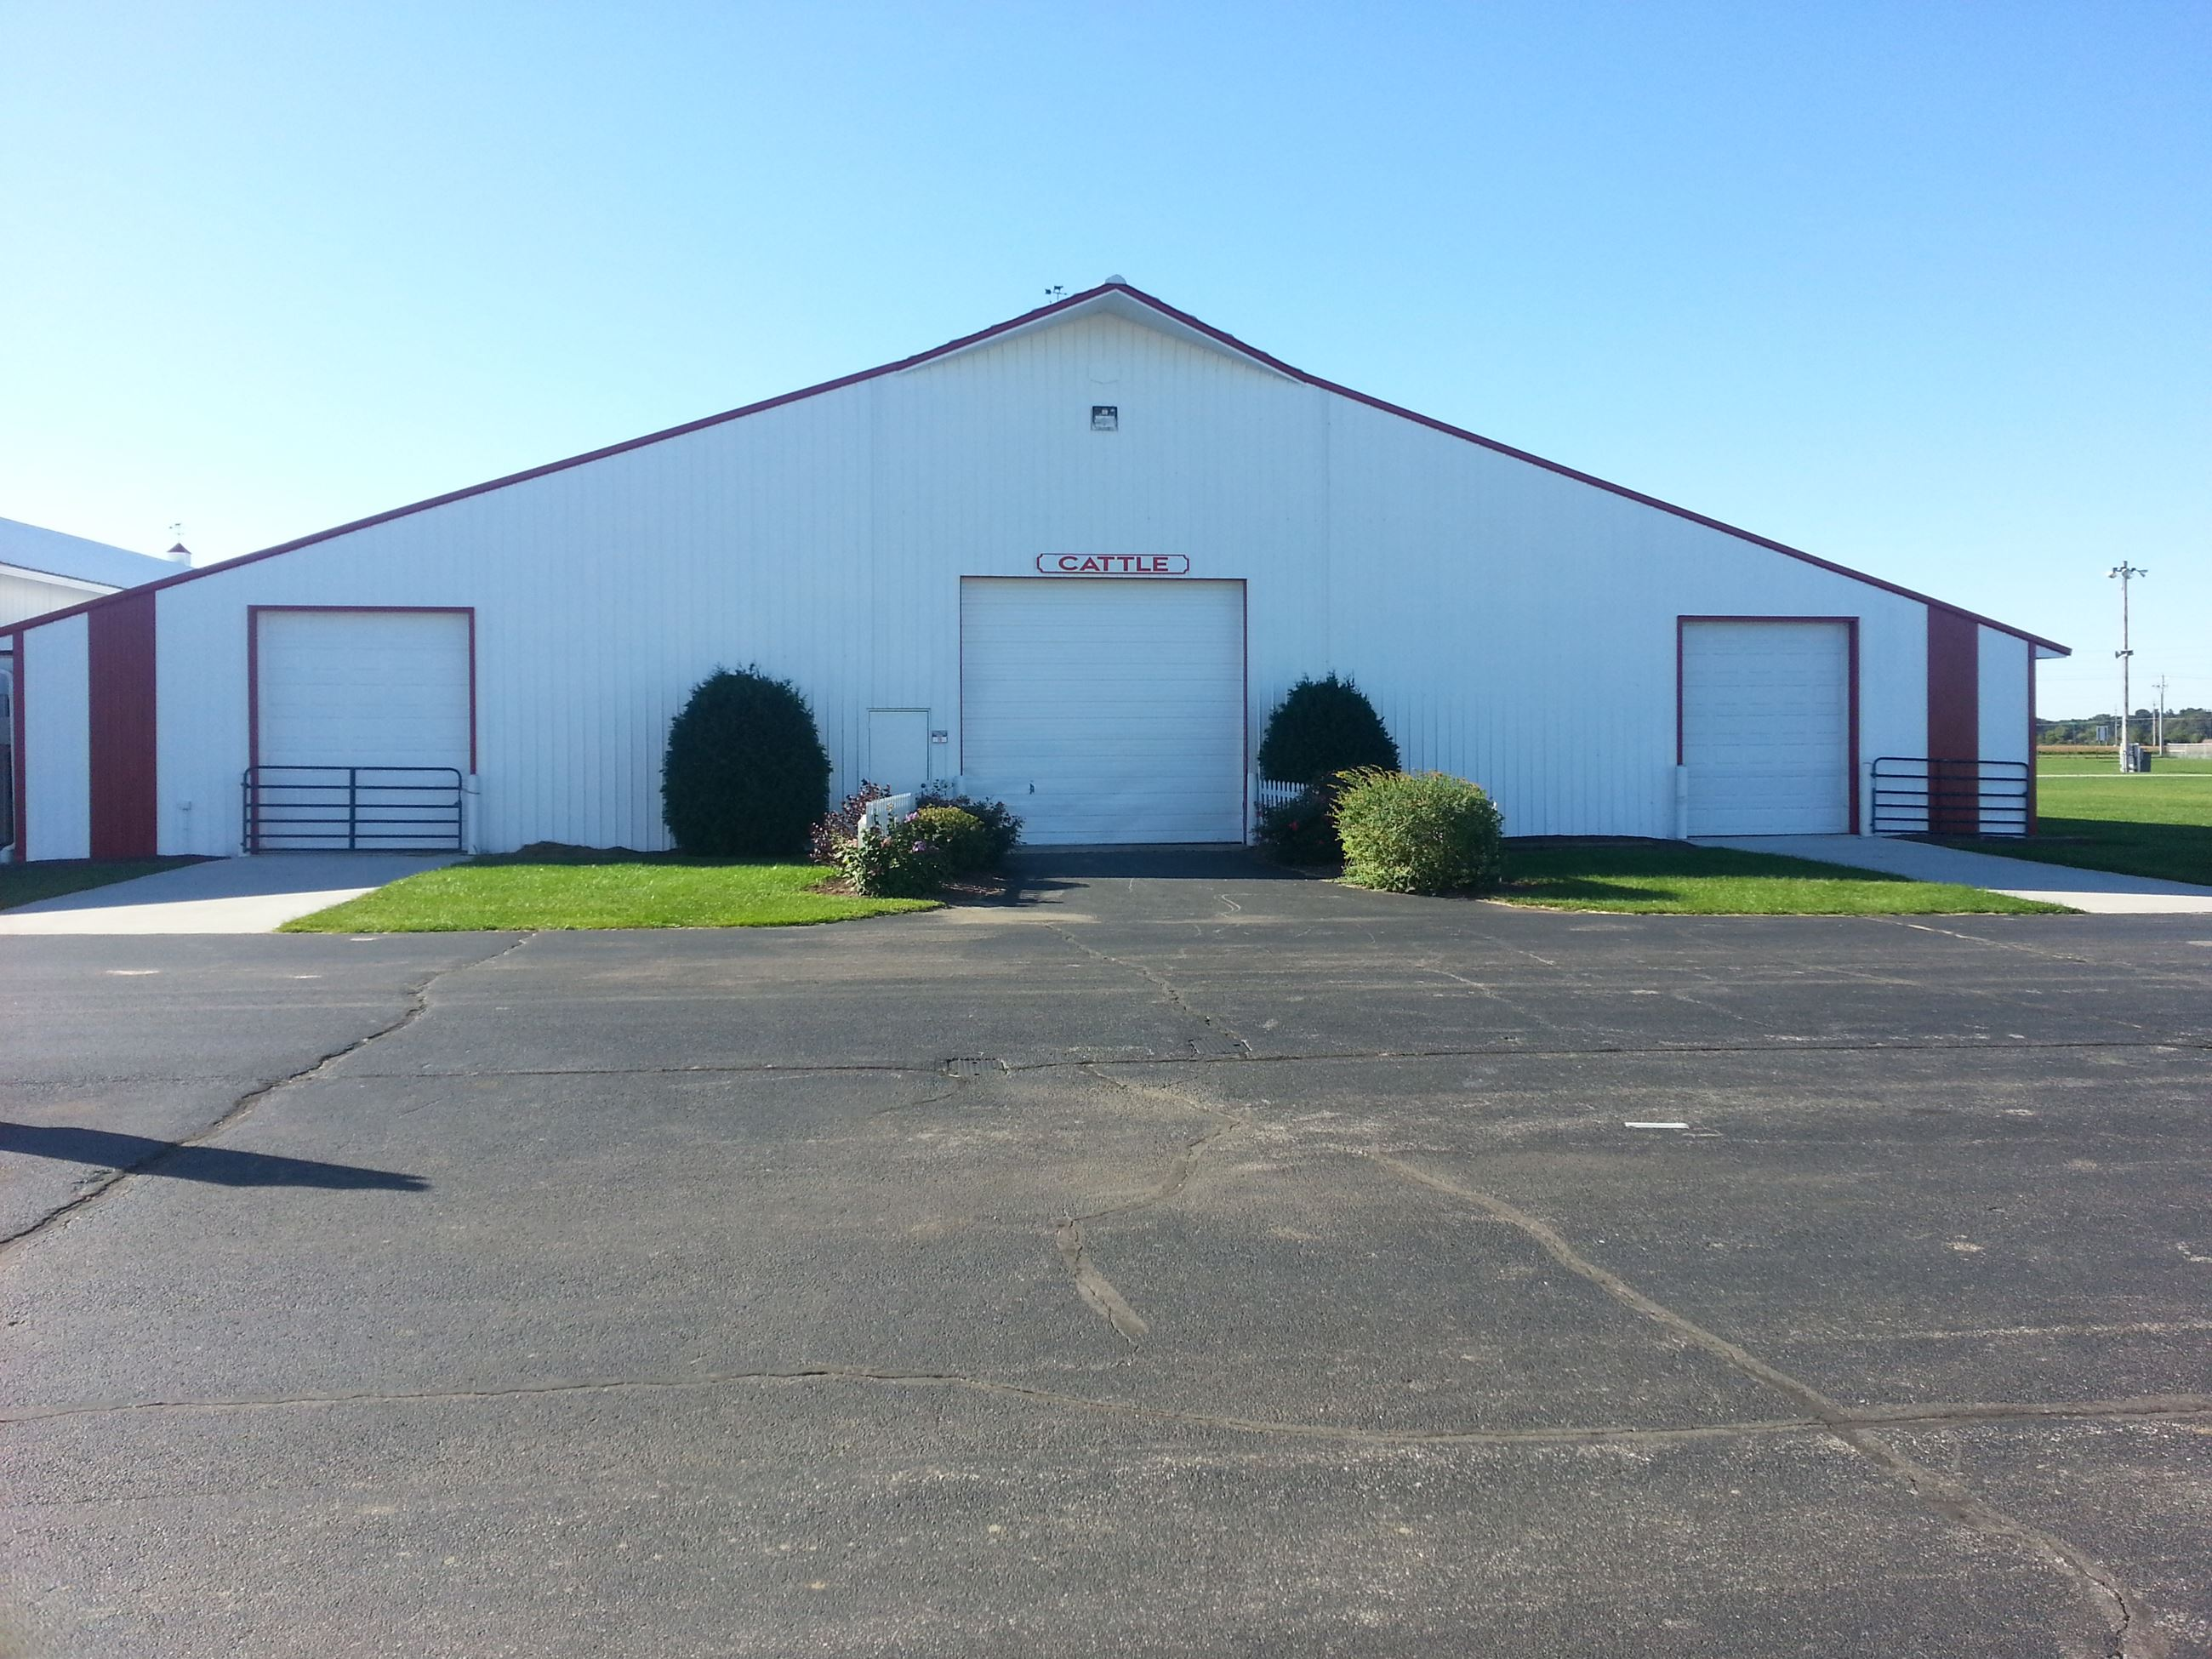 Front of cattle barn building at Porter County Expo Center